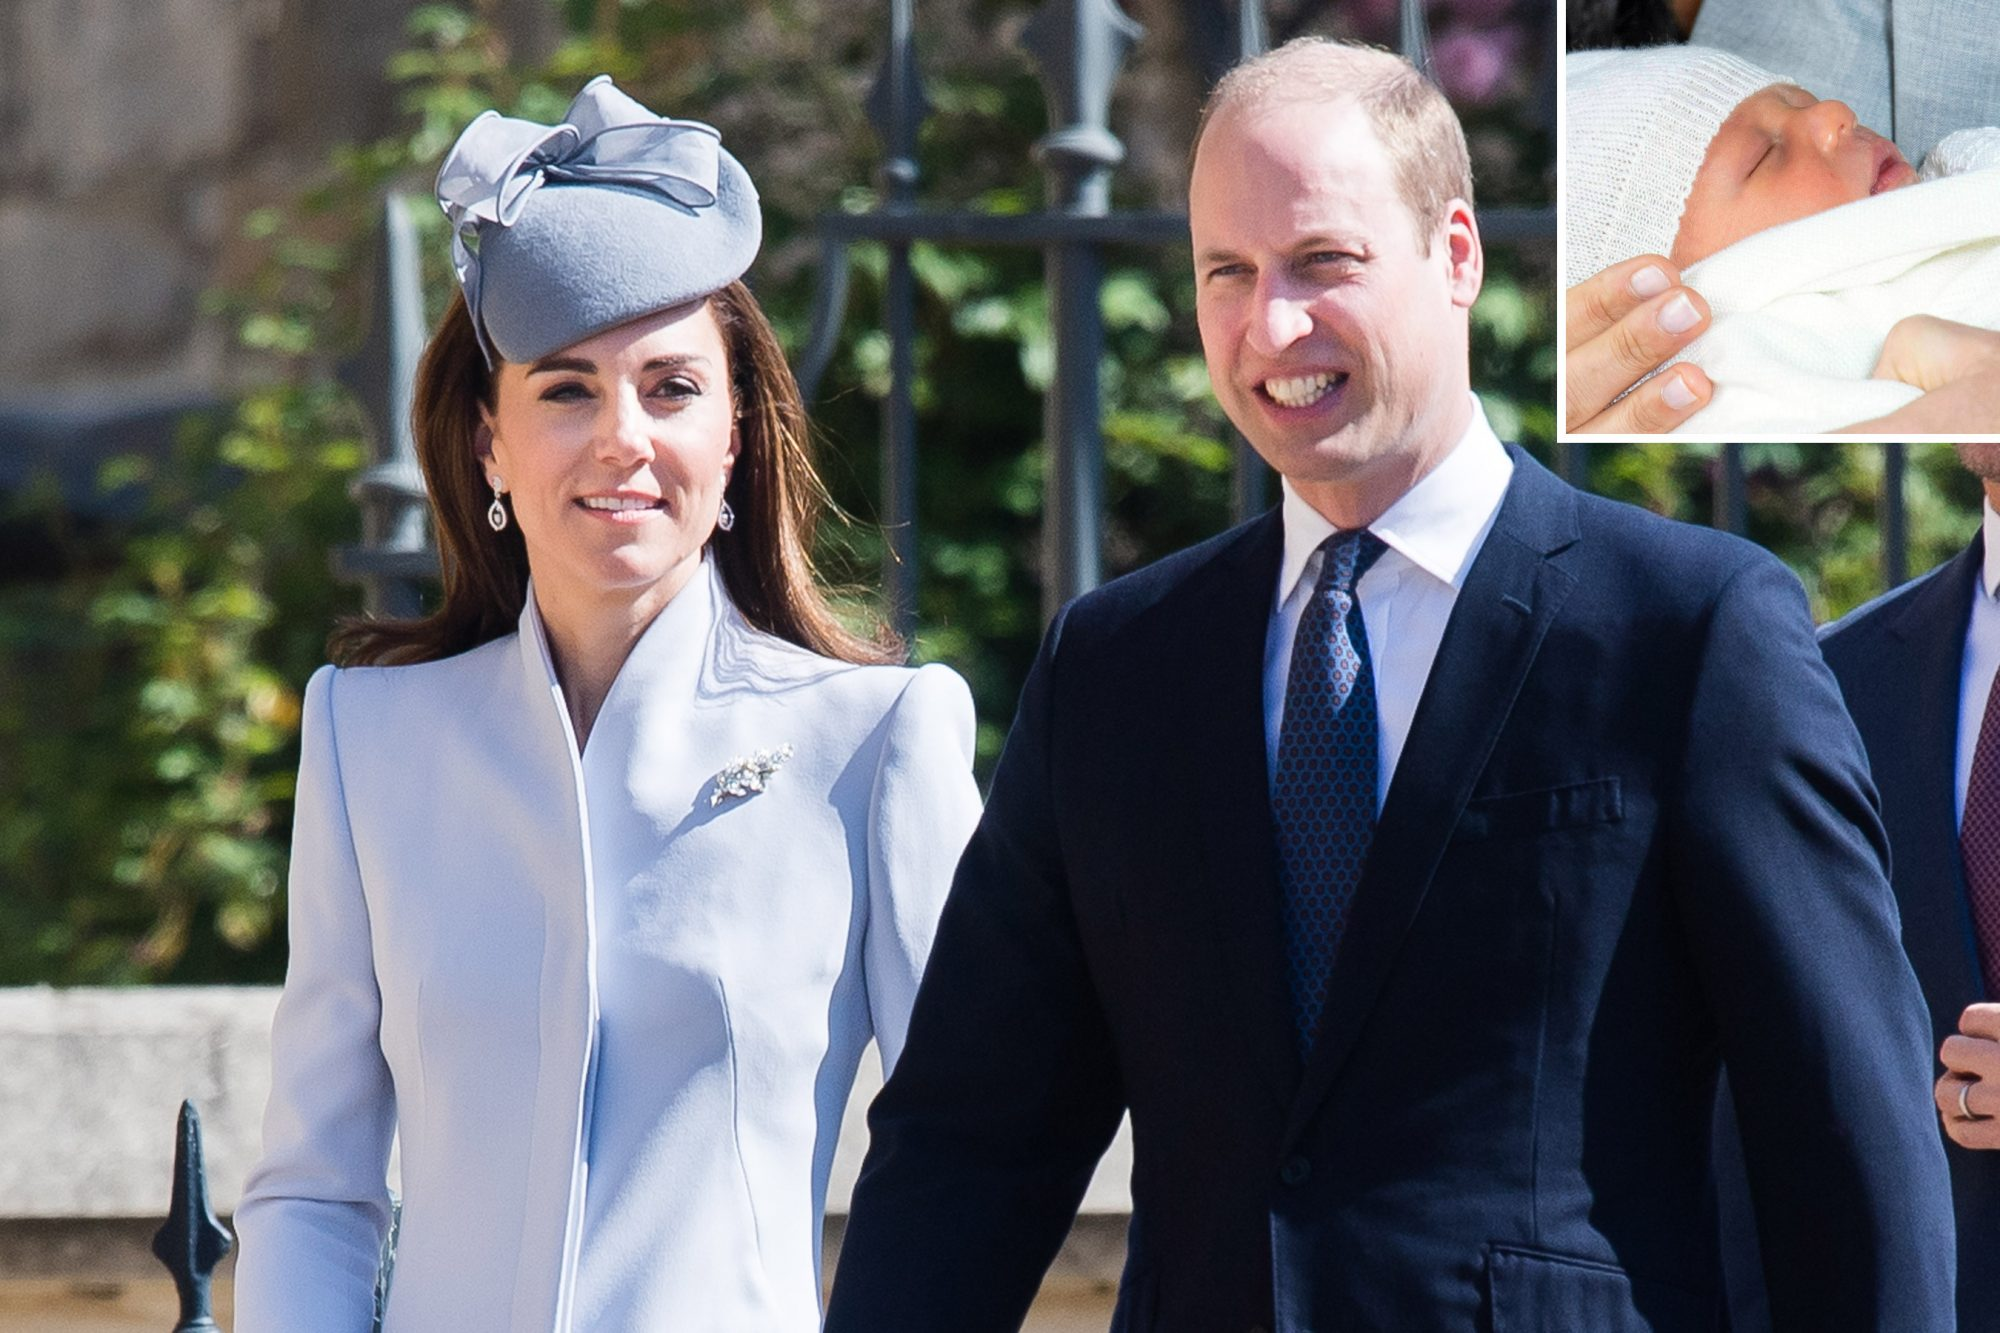 Prince William and Kate Middleton Just Met Baby Archie for the First Time!